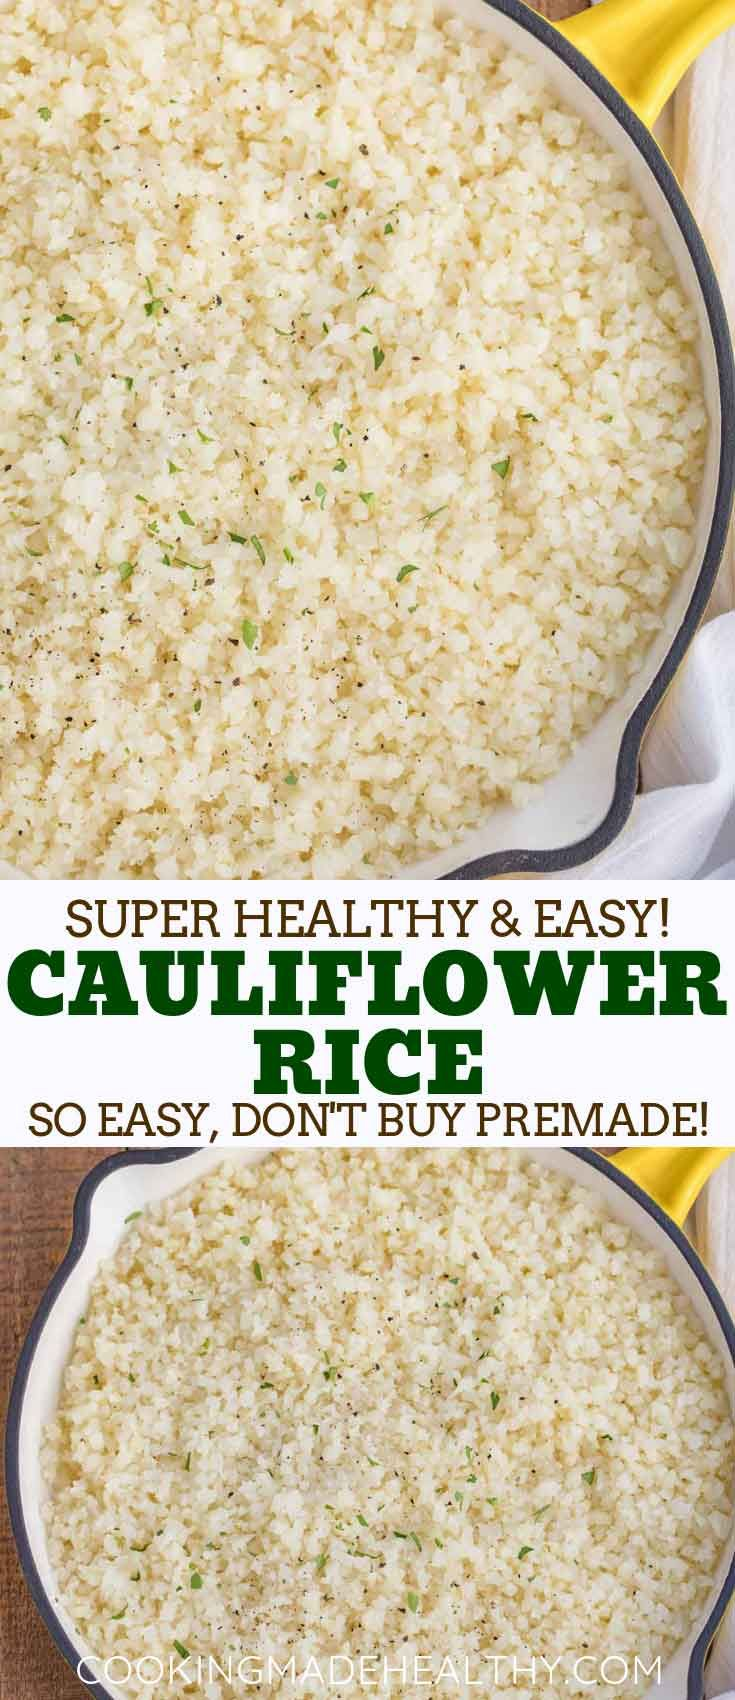 Cauliflower Rice is a soft and nutty low carb side dish made with cauliflower, onion, and seasoning. It's the PERFECT low carb substitute for rice or pasta, and ready in under 20 minutes! #cauliflowerrice #rice #healthy #stirfry #cauliflower #paleo #cookingmadehealthy #seasonedricerecipes